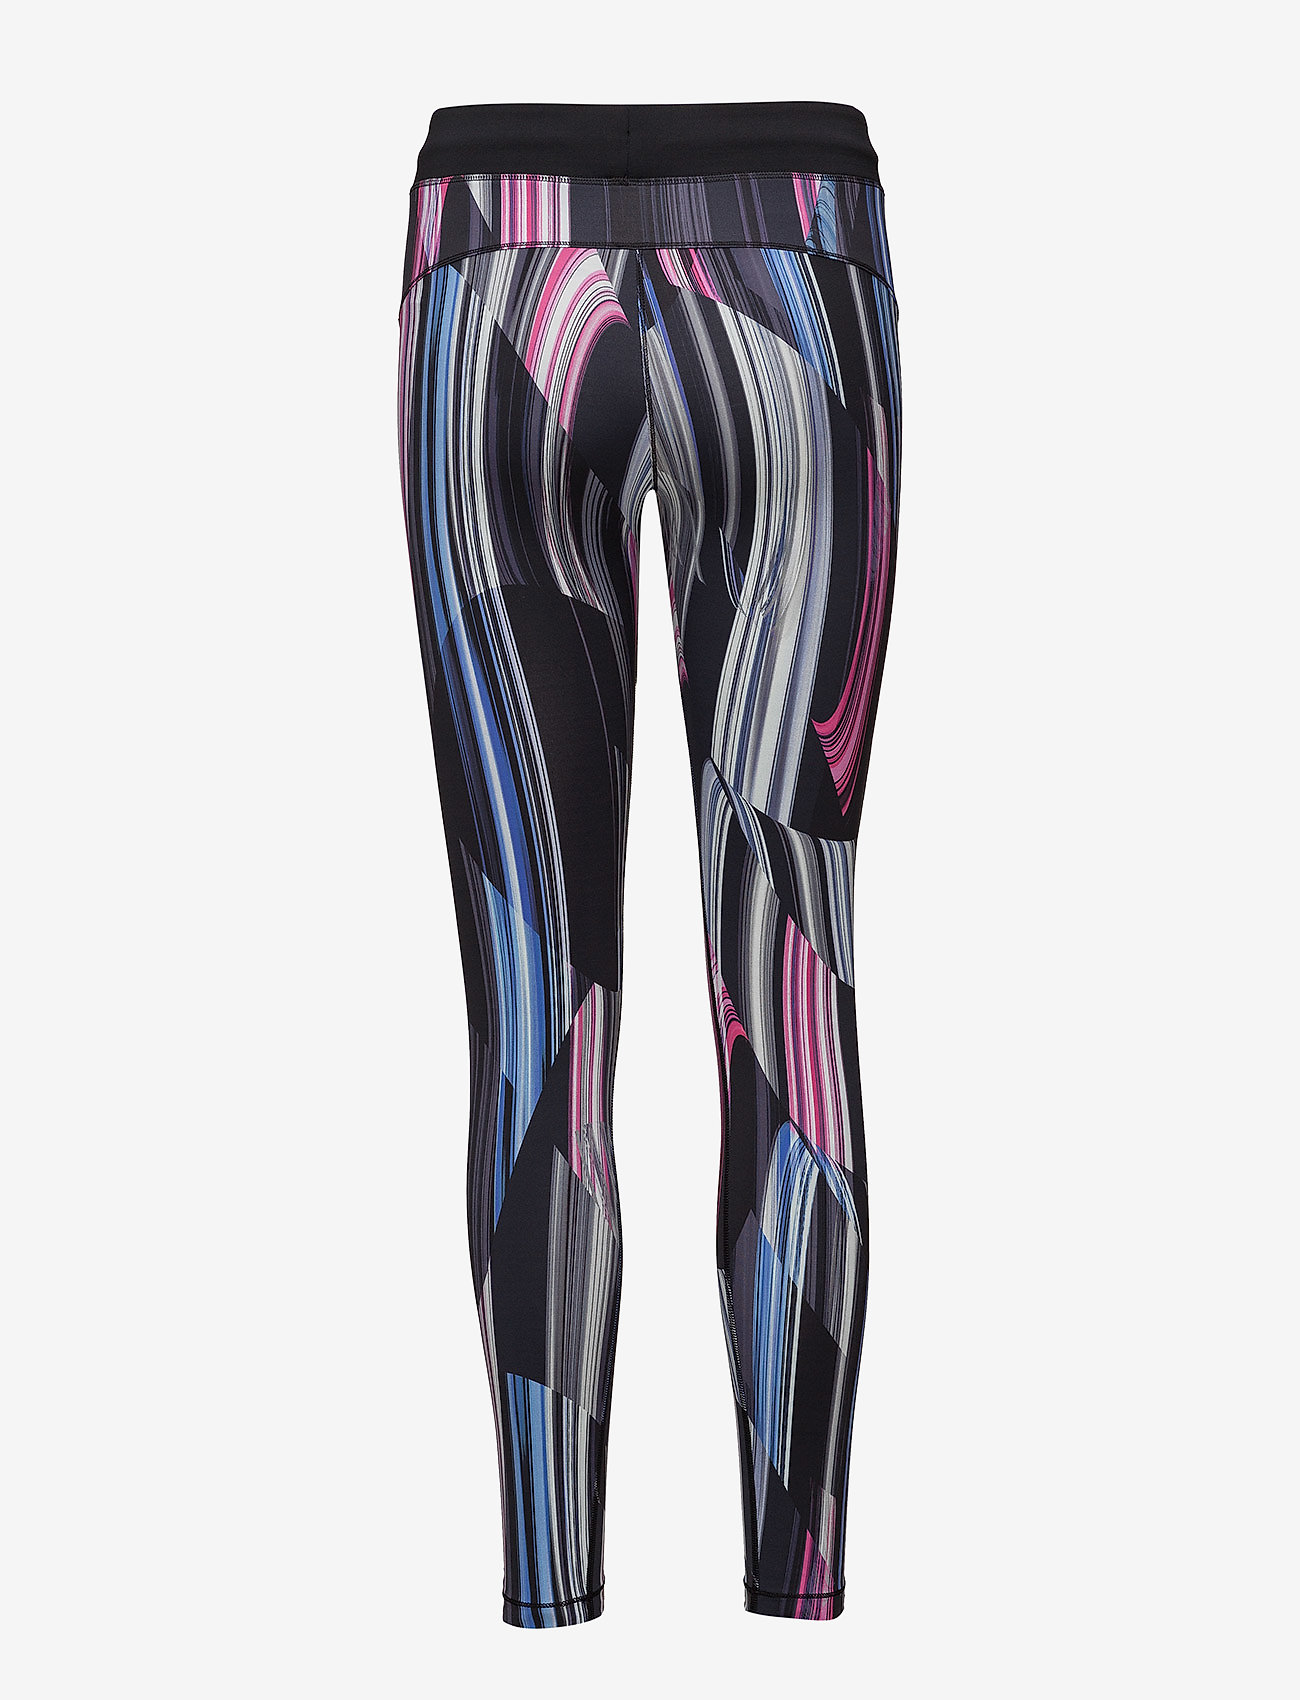 Casall Digital Wind 7//8 Womens Tights